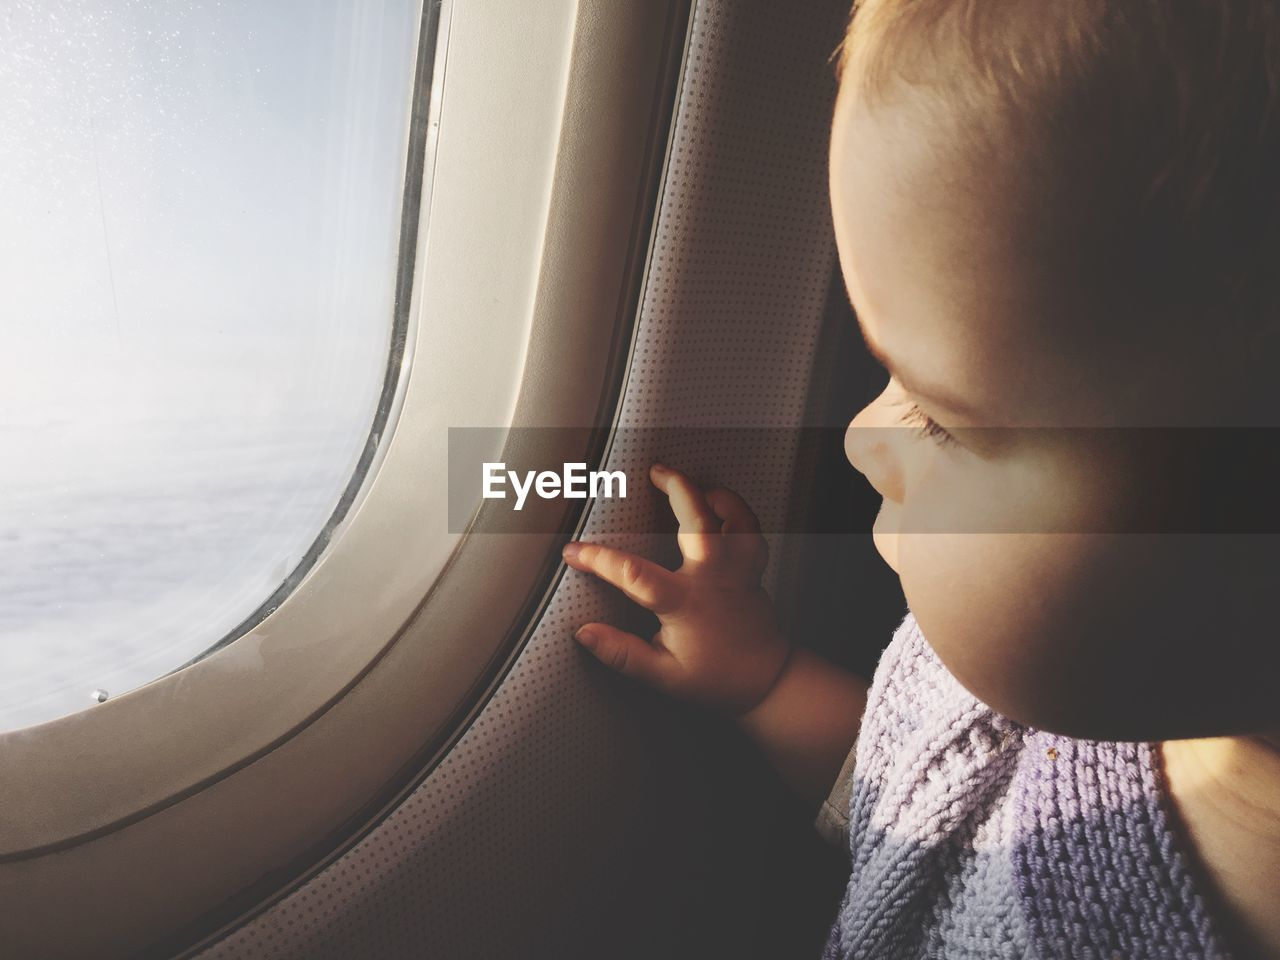 MIDSECTION OF BOY LOOKING AT AIRPLANE WINDOW